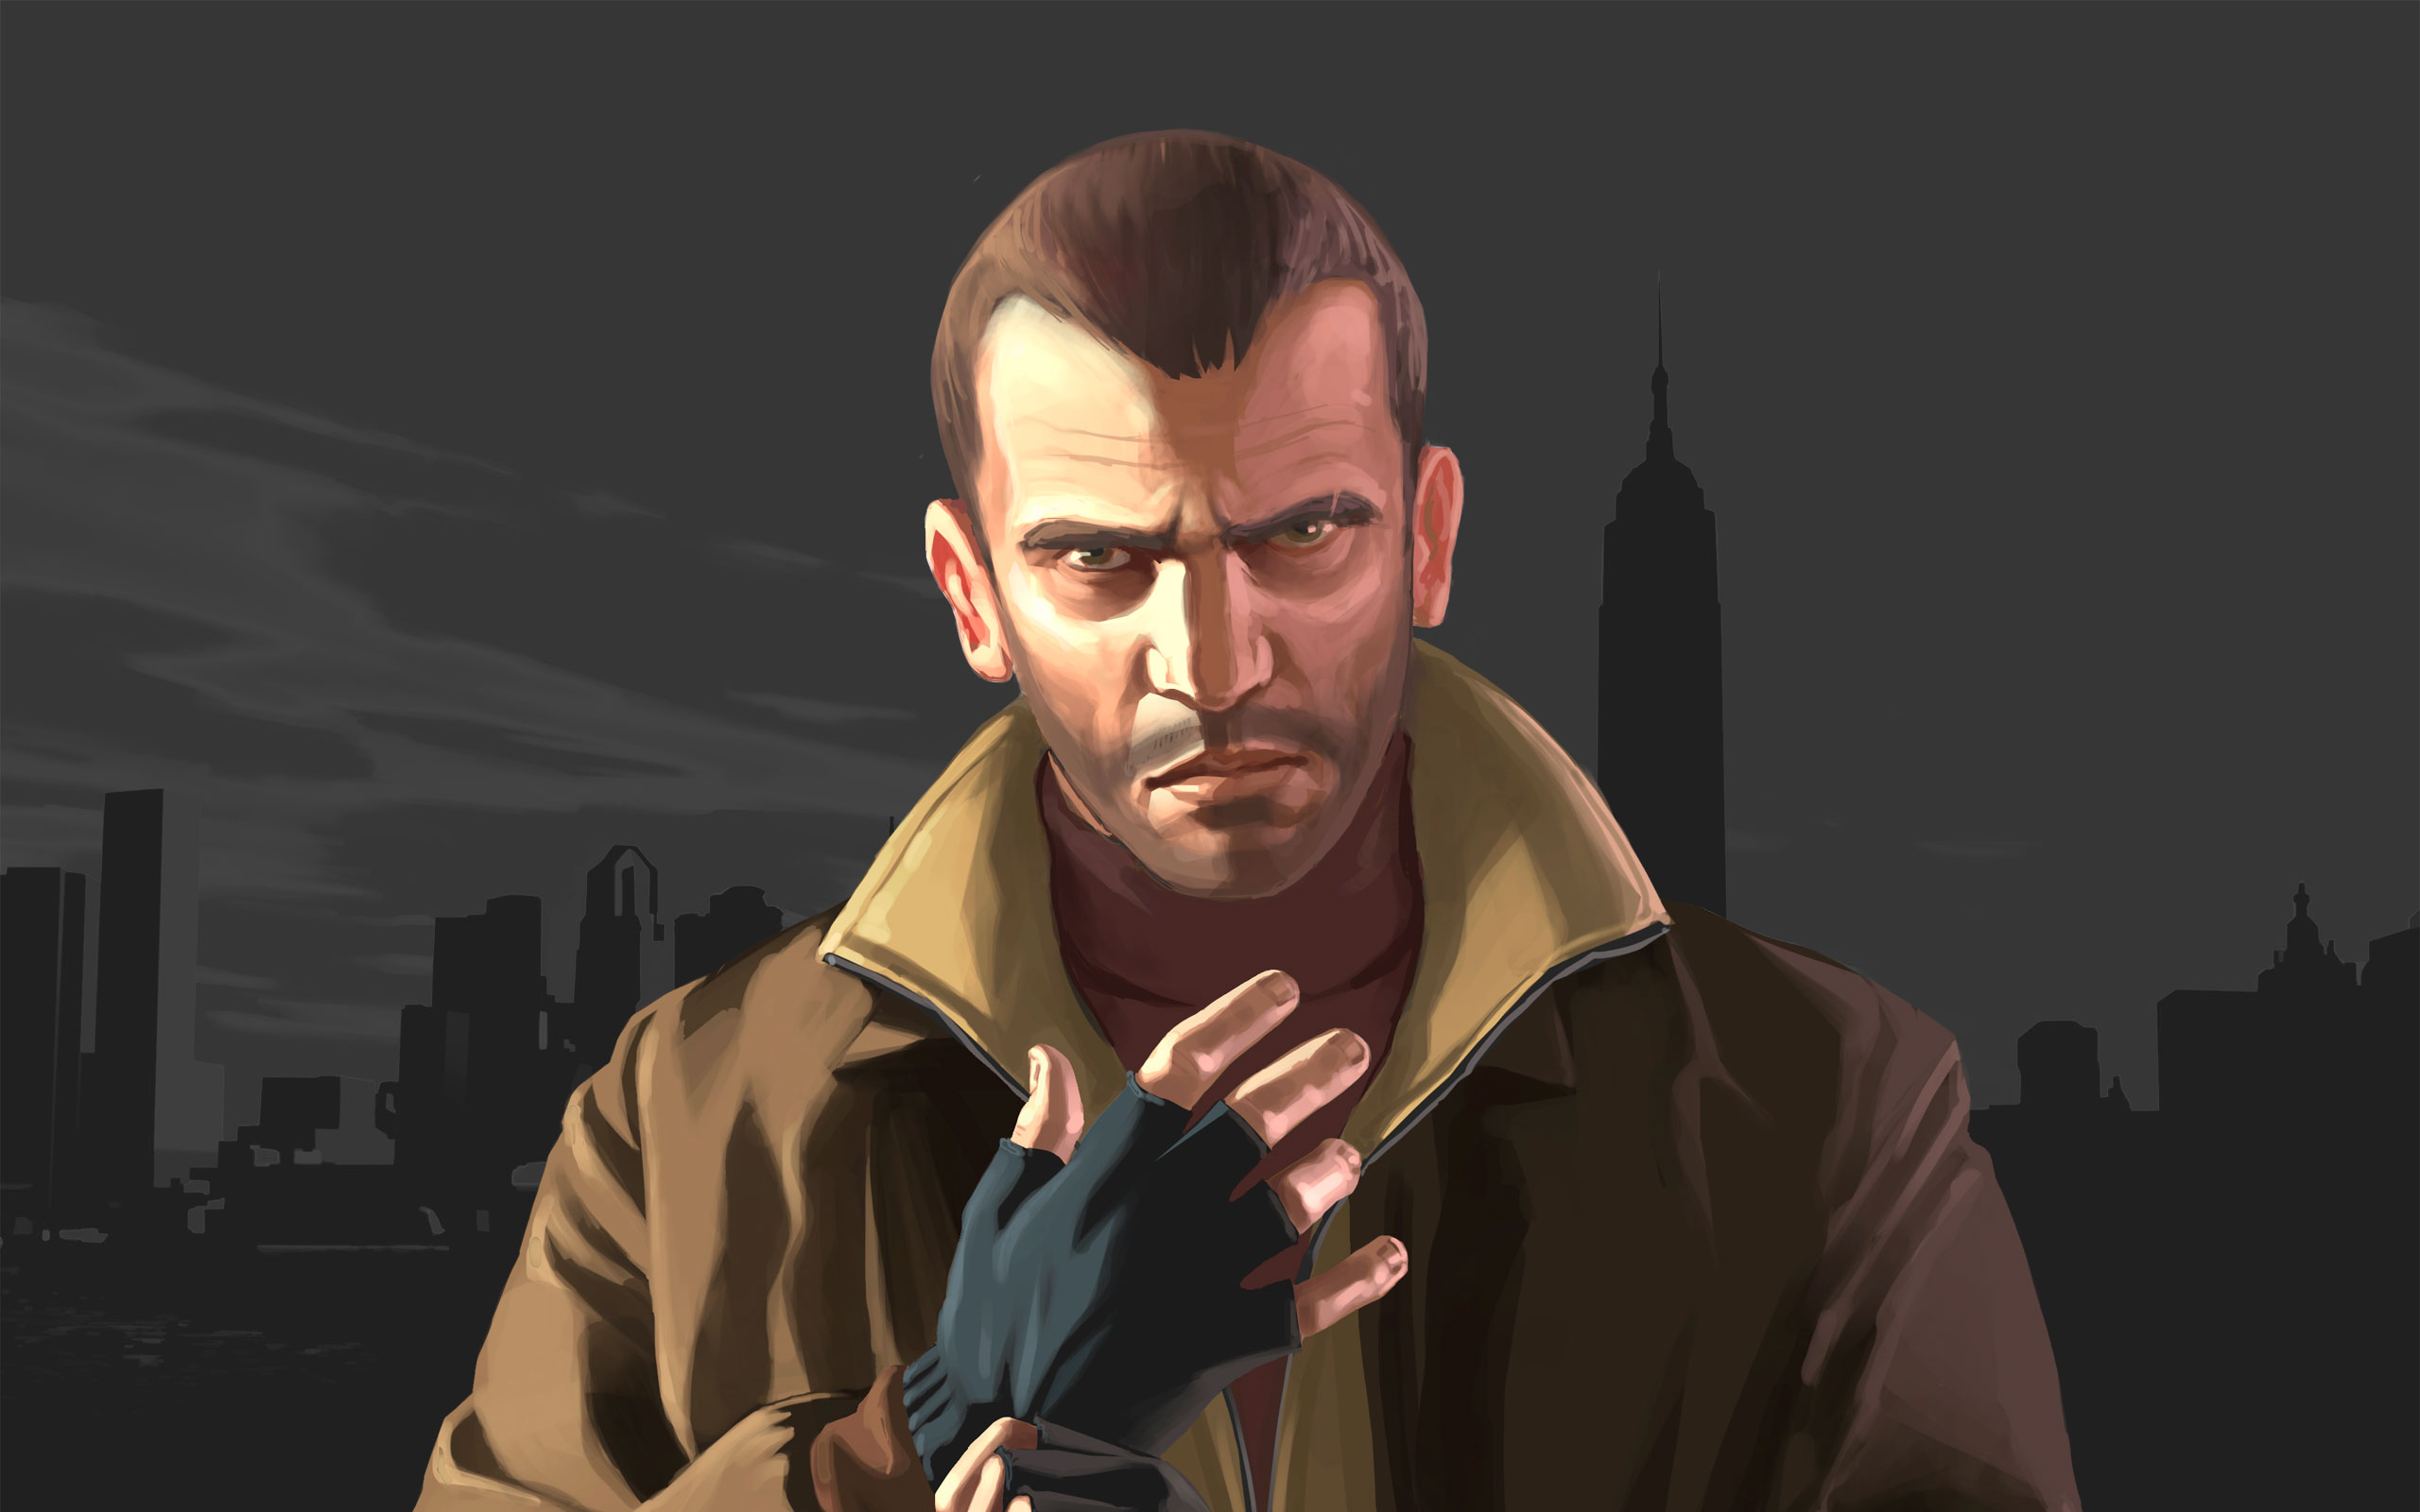 gta 4 cheats for helicopter with Wallpaper on 73433 Mi 28 Night Hunter also Mil Mi 26 Halo Largest Mass Produced Heli Add On also Cell Phone Cheats On Game Gta 5 additionally Mclaren F1 Gtr Longtail also 70926 Police Cars Pack Els.